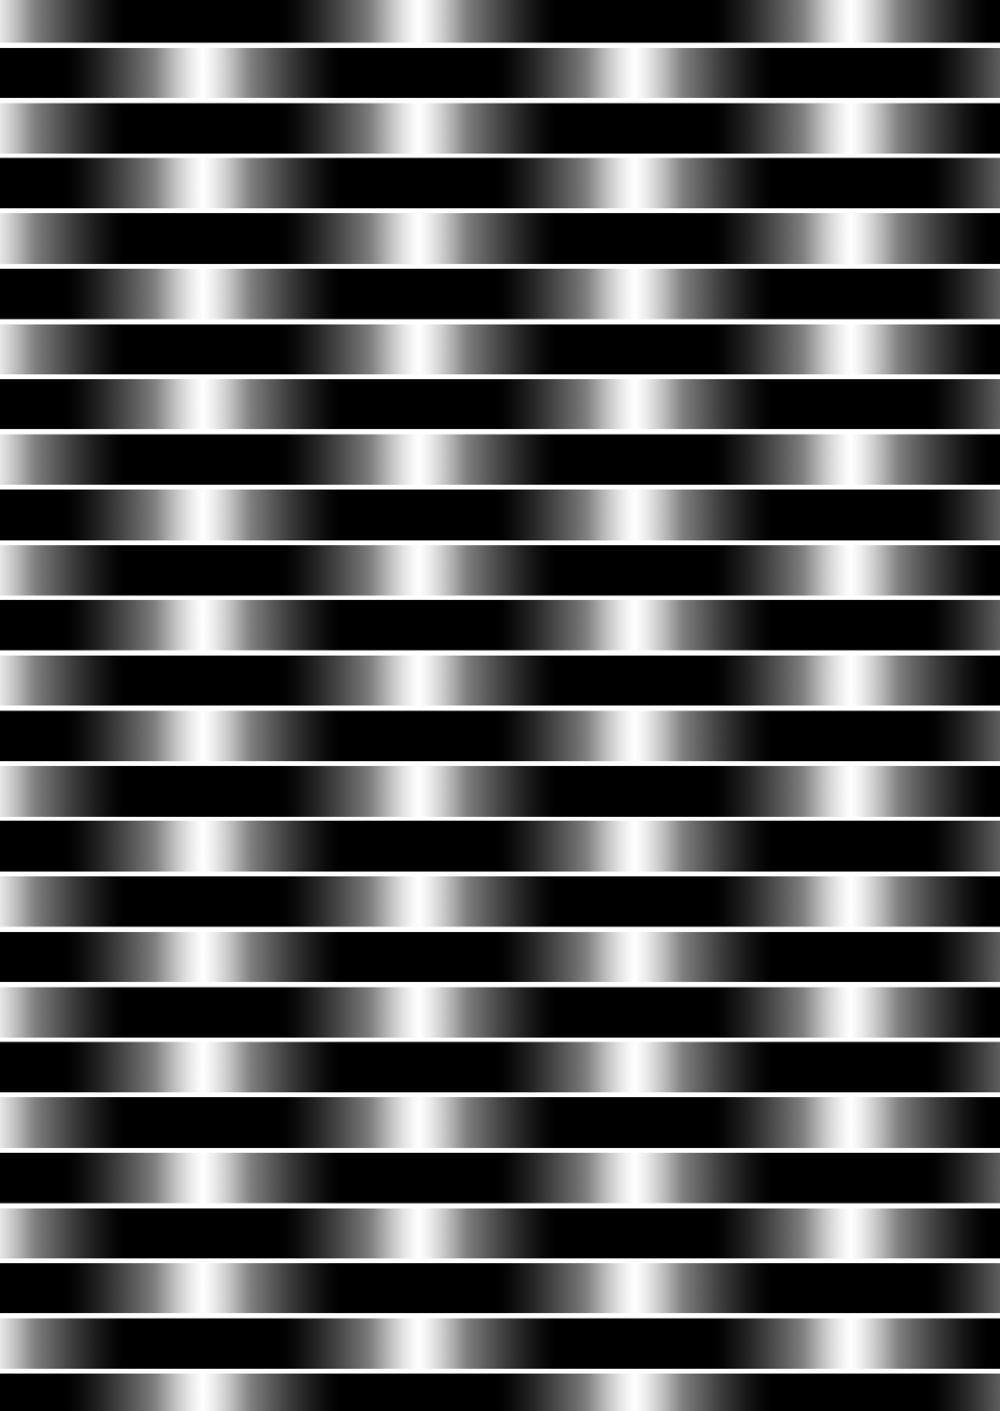 kristi-omeara-fading-stripe-repeat-preview-2.png